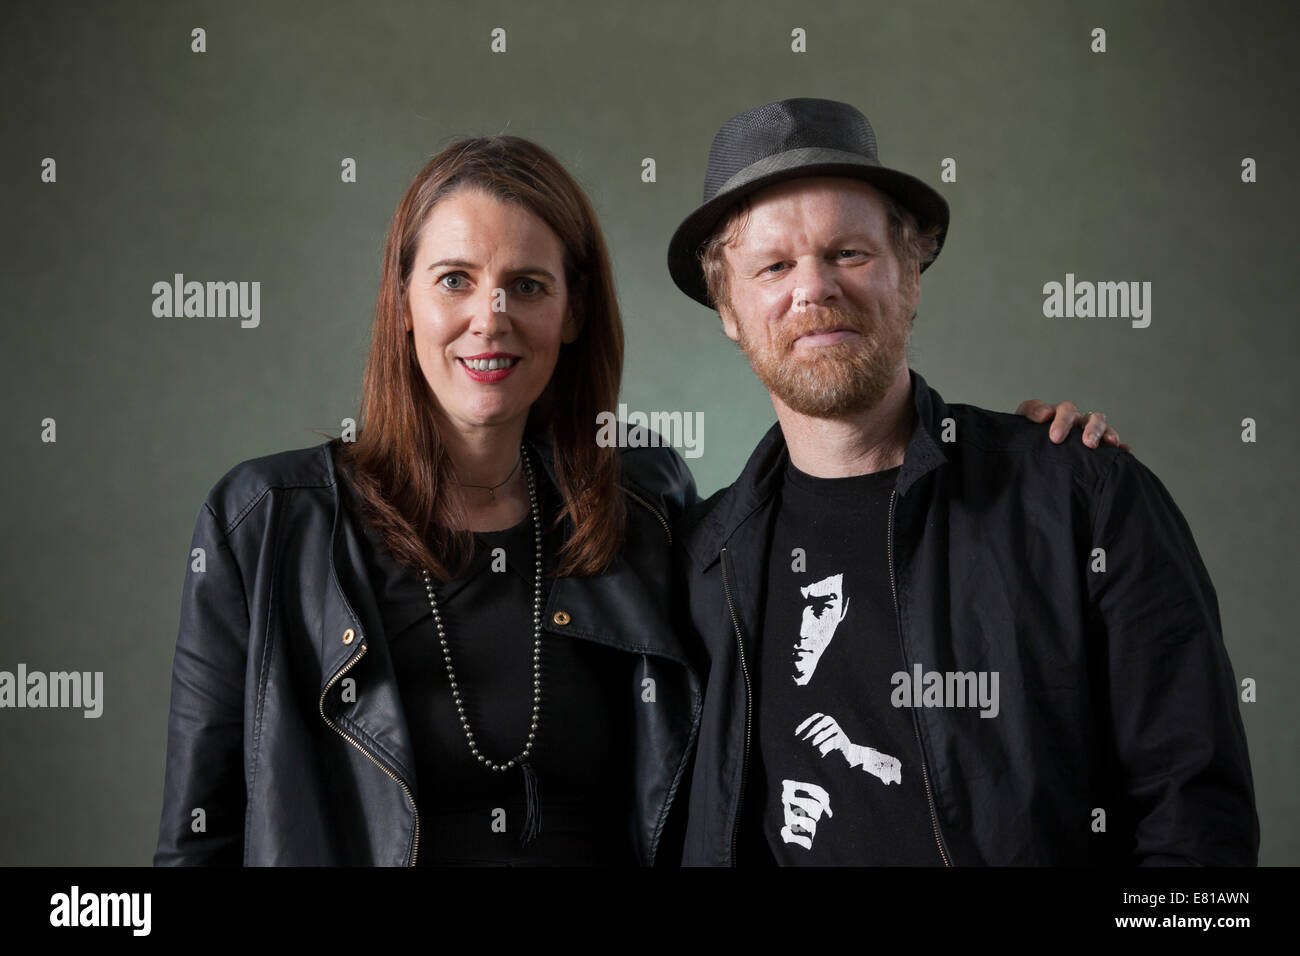 Authors, Nick Brooks & Lisa O'Donnell, at the Edinburgh International Book Festival 2014. - Stock Image